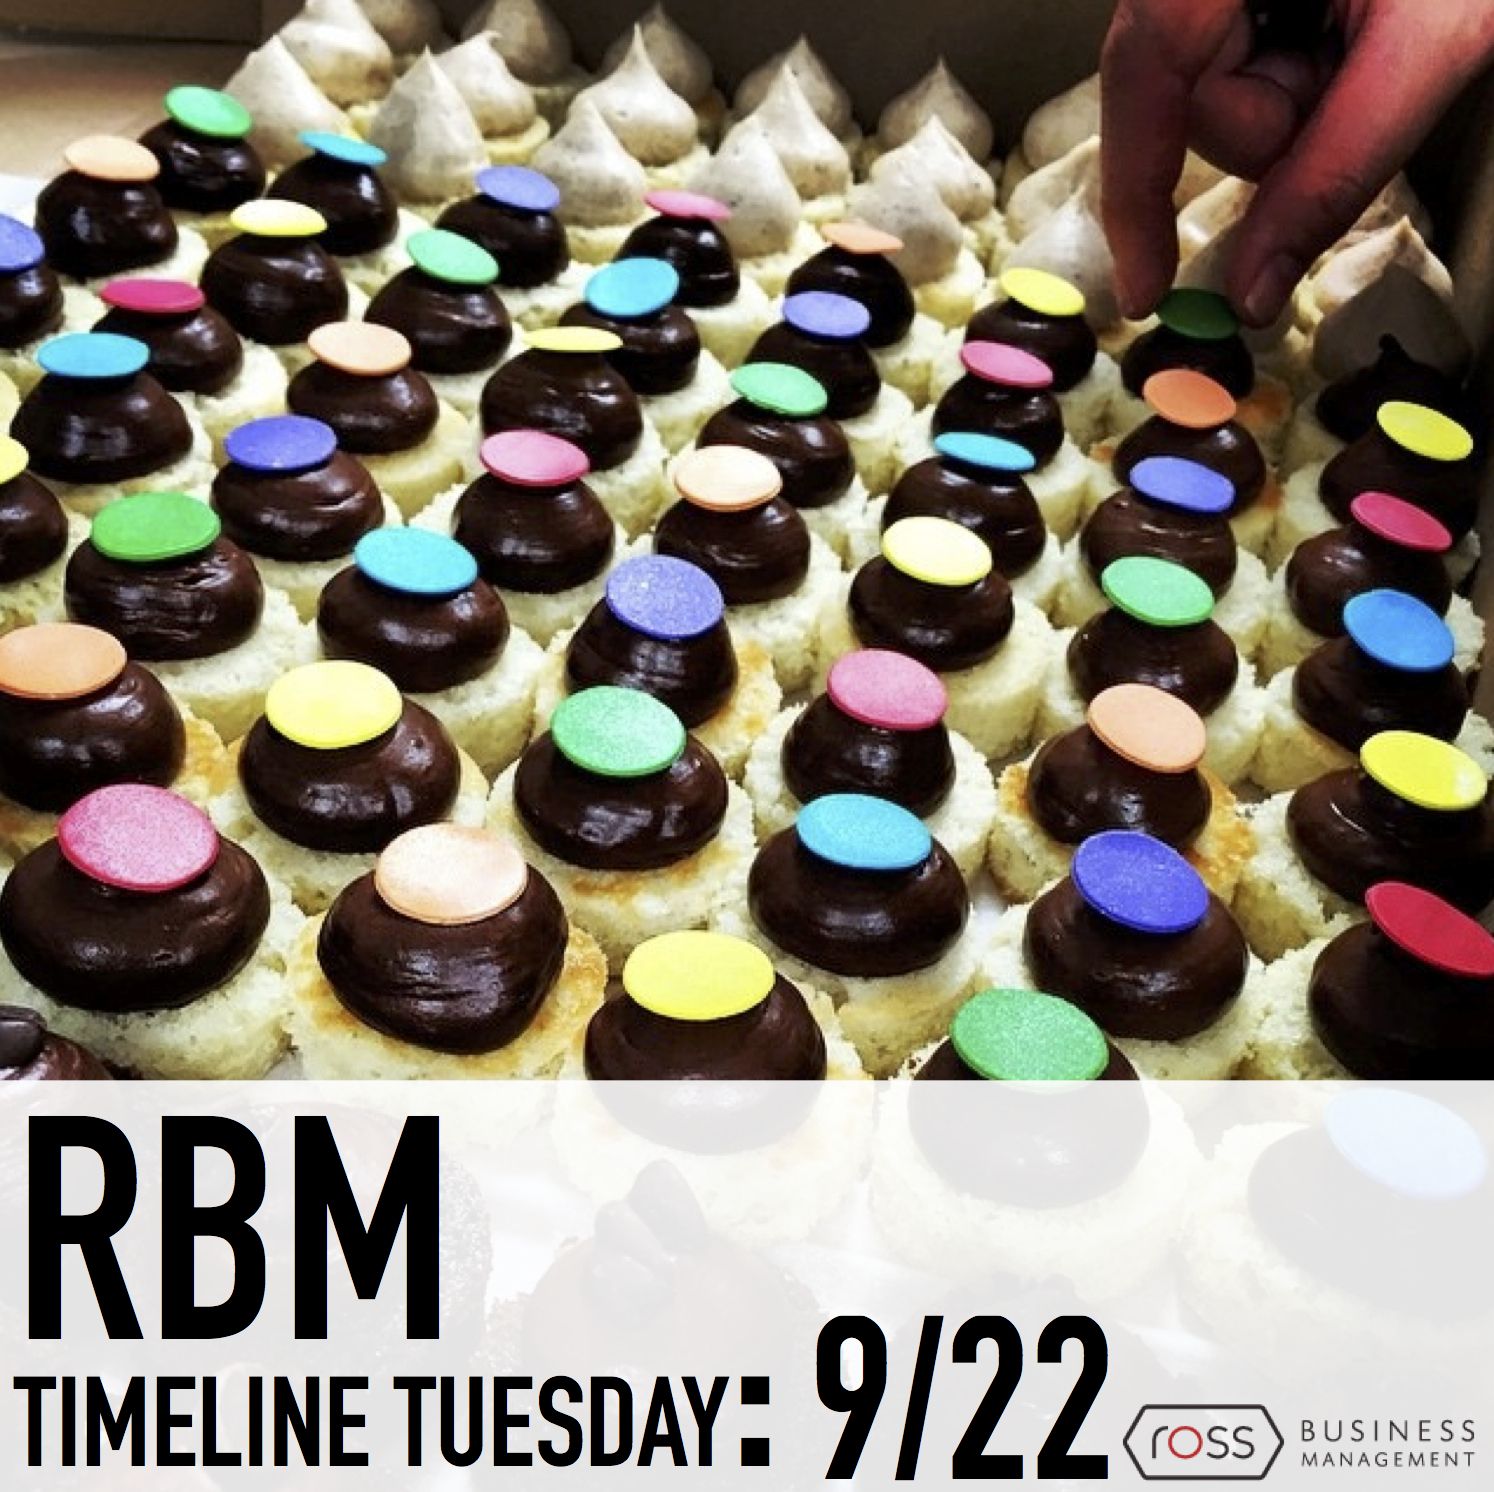 RBM Timeline Tuesday Template